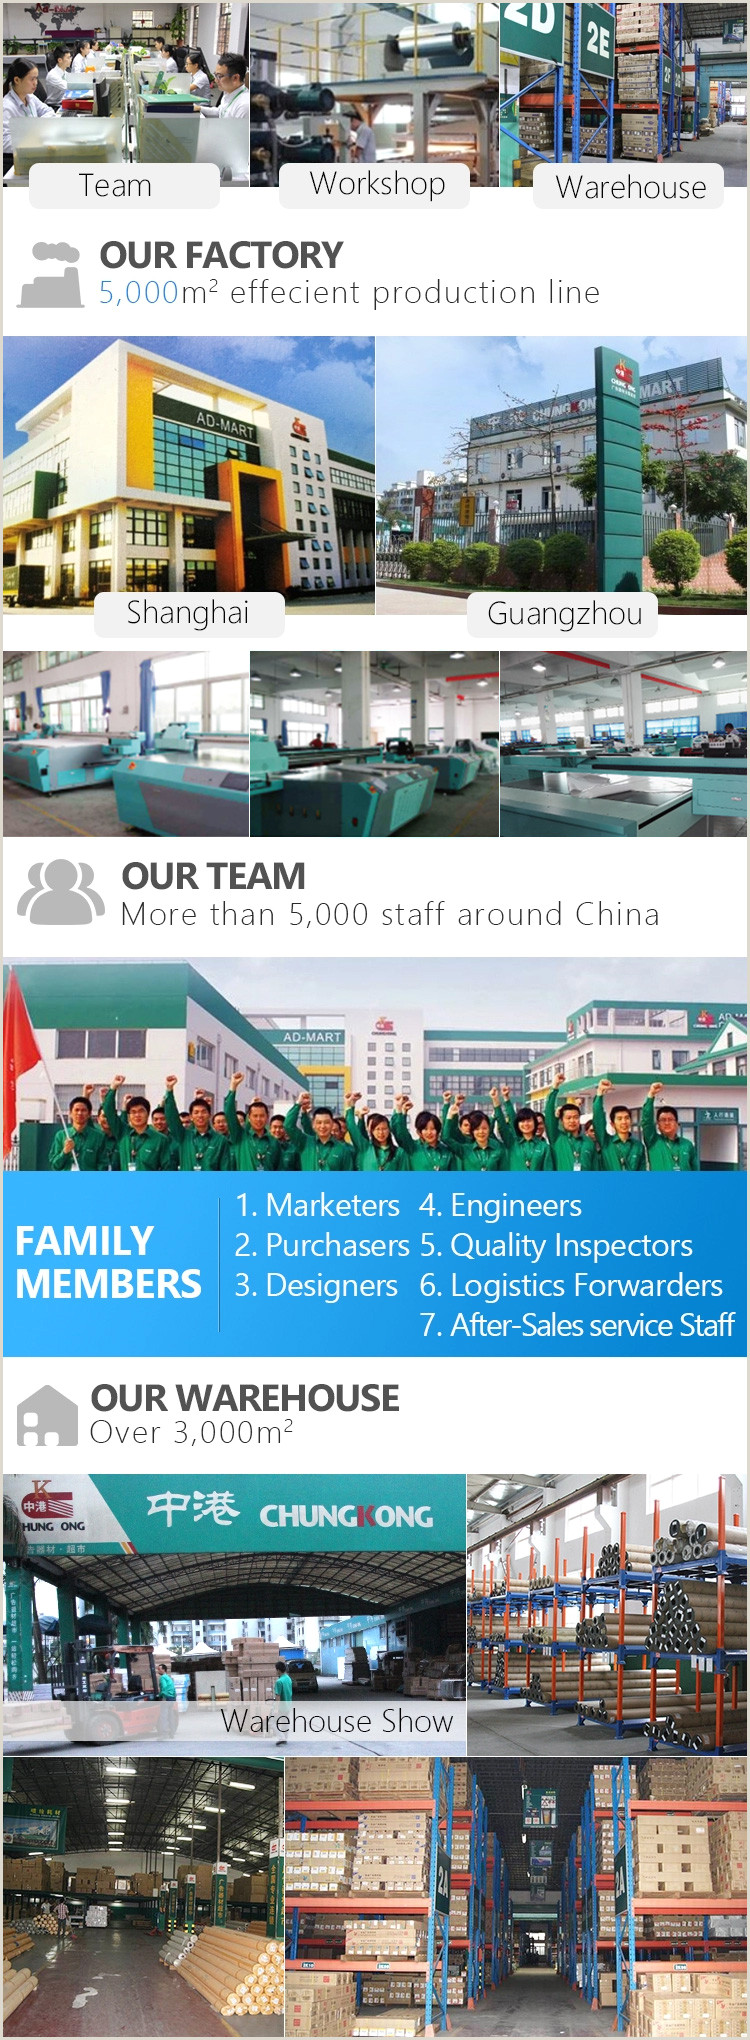 A Frame Banner Stand Door Shape Banner Stand Door Type Frame Display Iron Display Rack For Outdoor View Banner Stand Chungkong Product Details From Chungkong Ad Mart